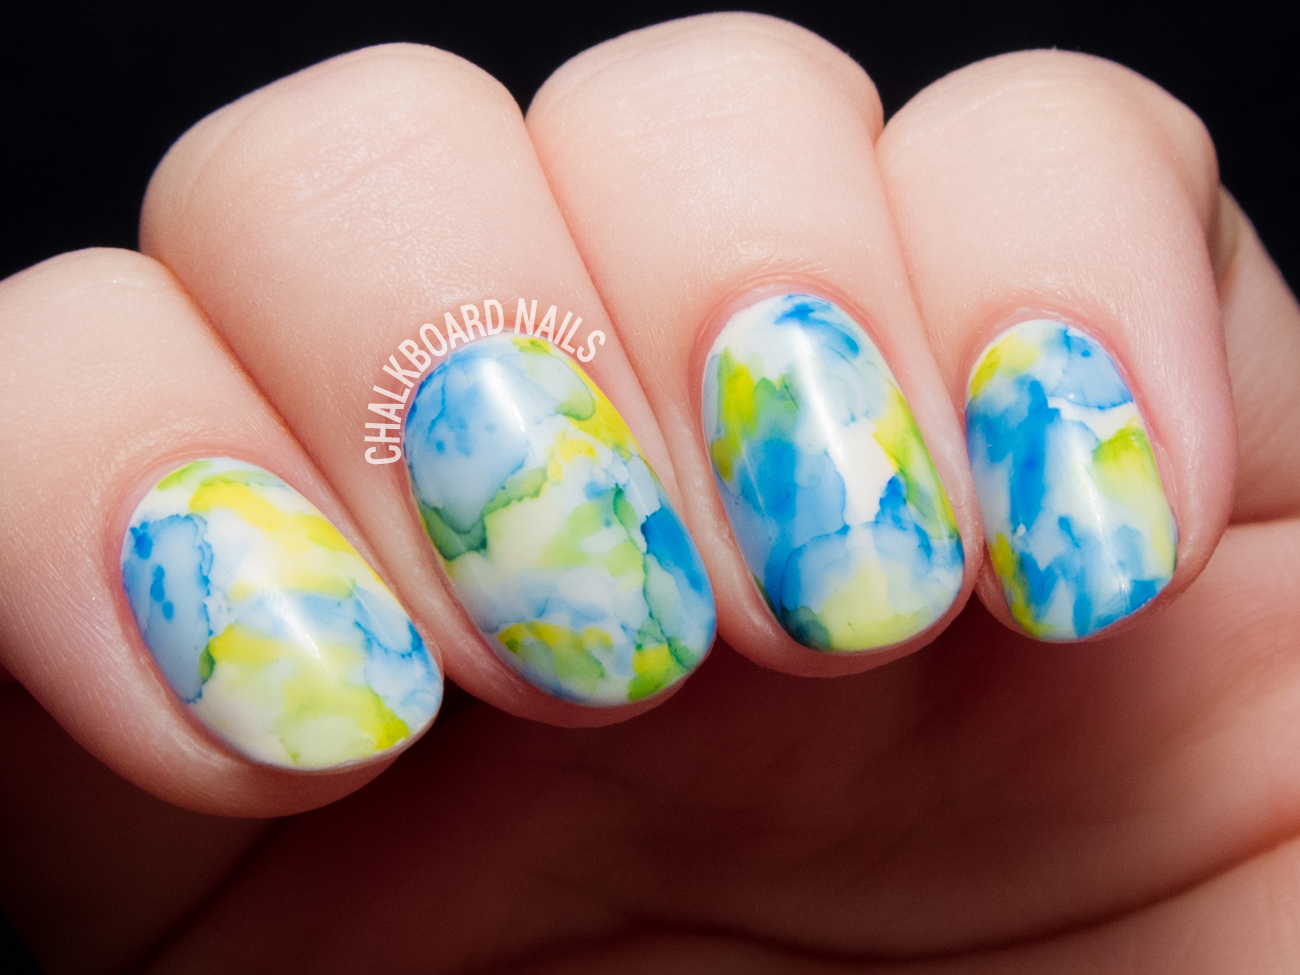 Sharpie watercolored gel nail art by @chalkboardnails